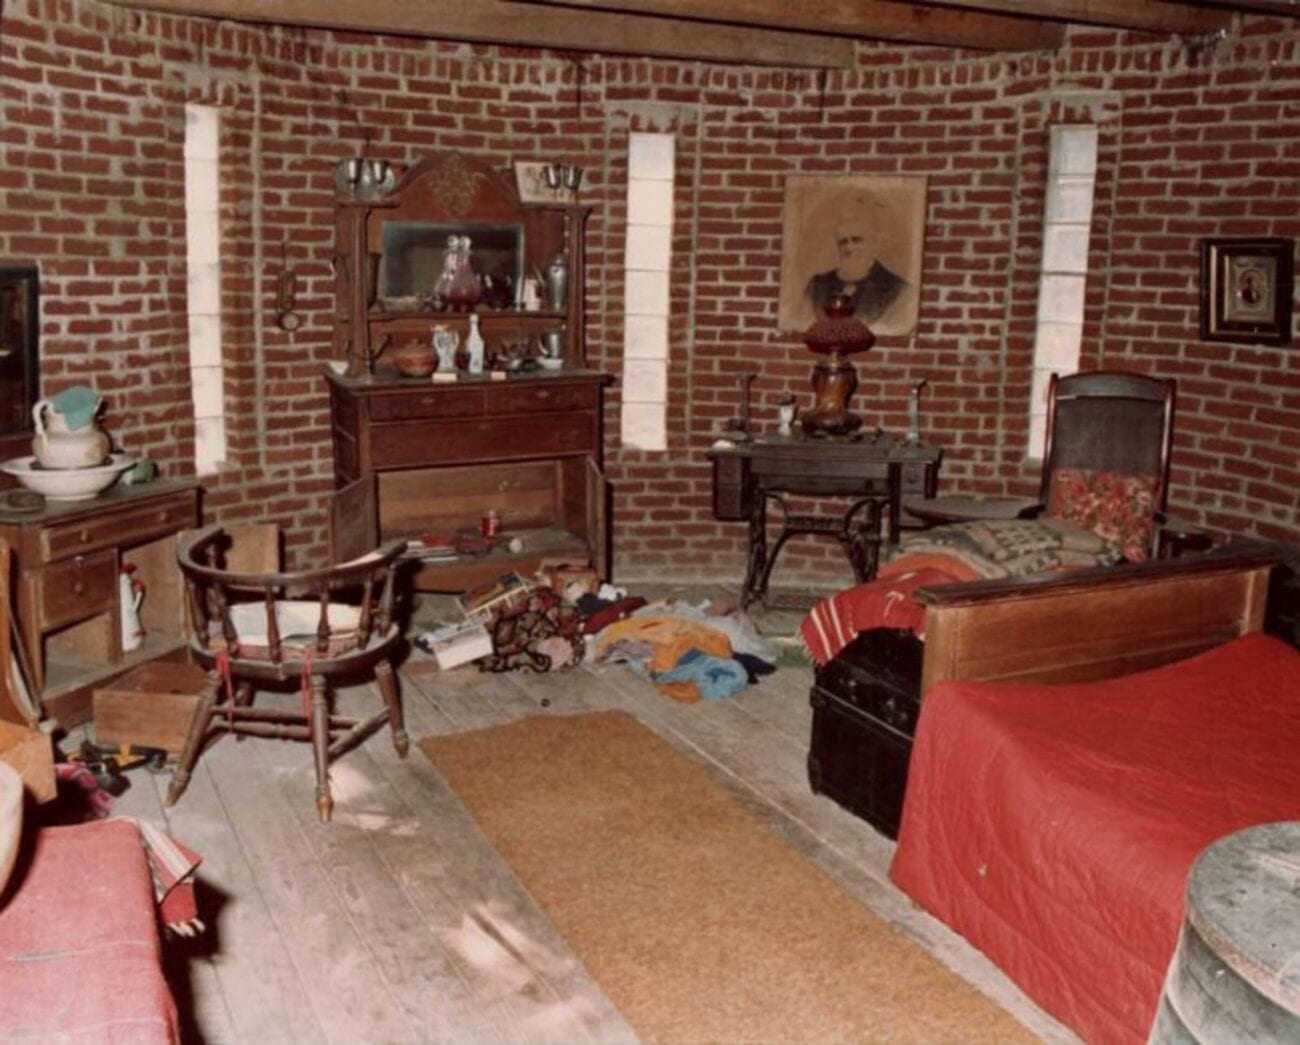 Corpsewood Manor has a dark history that lives up to its creepy name. Delve into the murders that took place there and learn about the mansion's dark past.